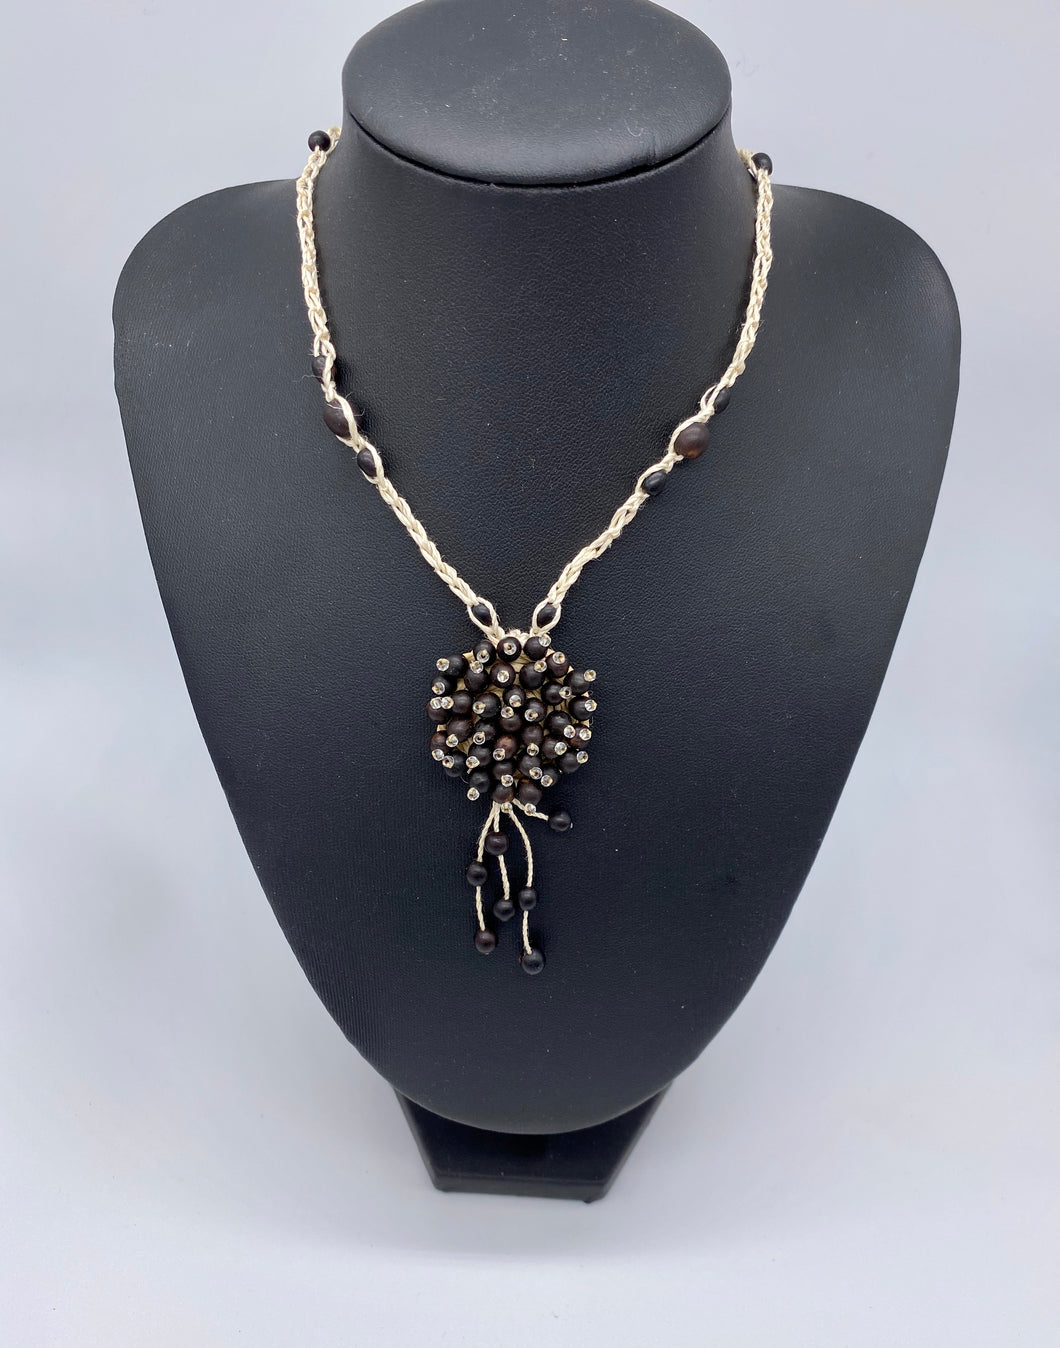 Braided black seed long necklace